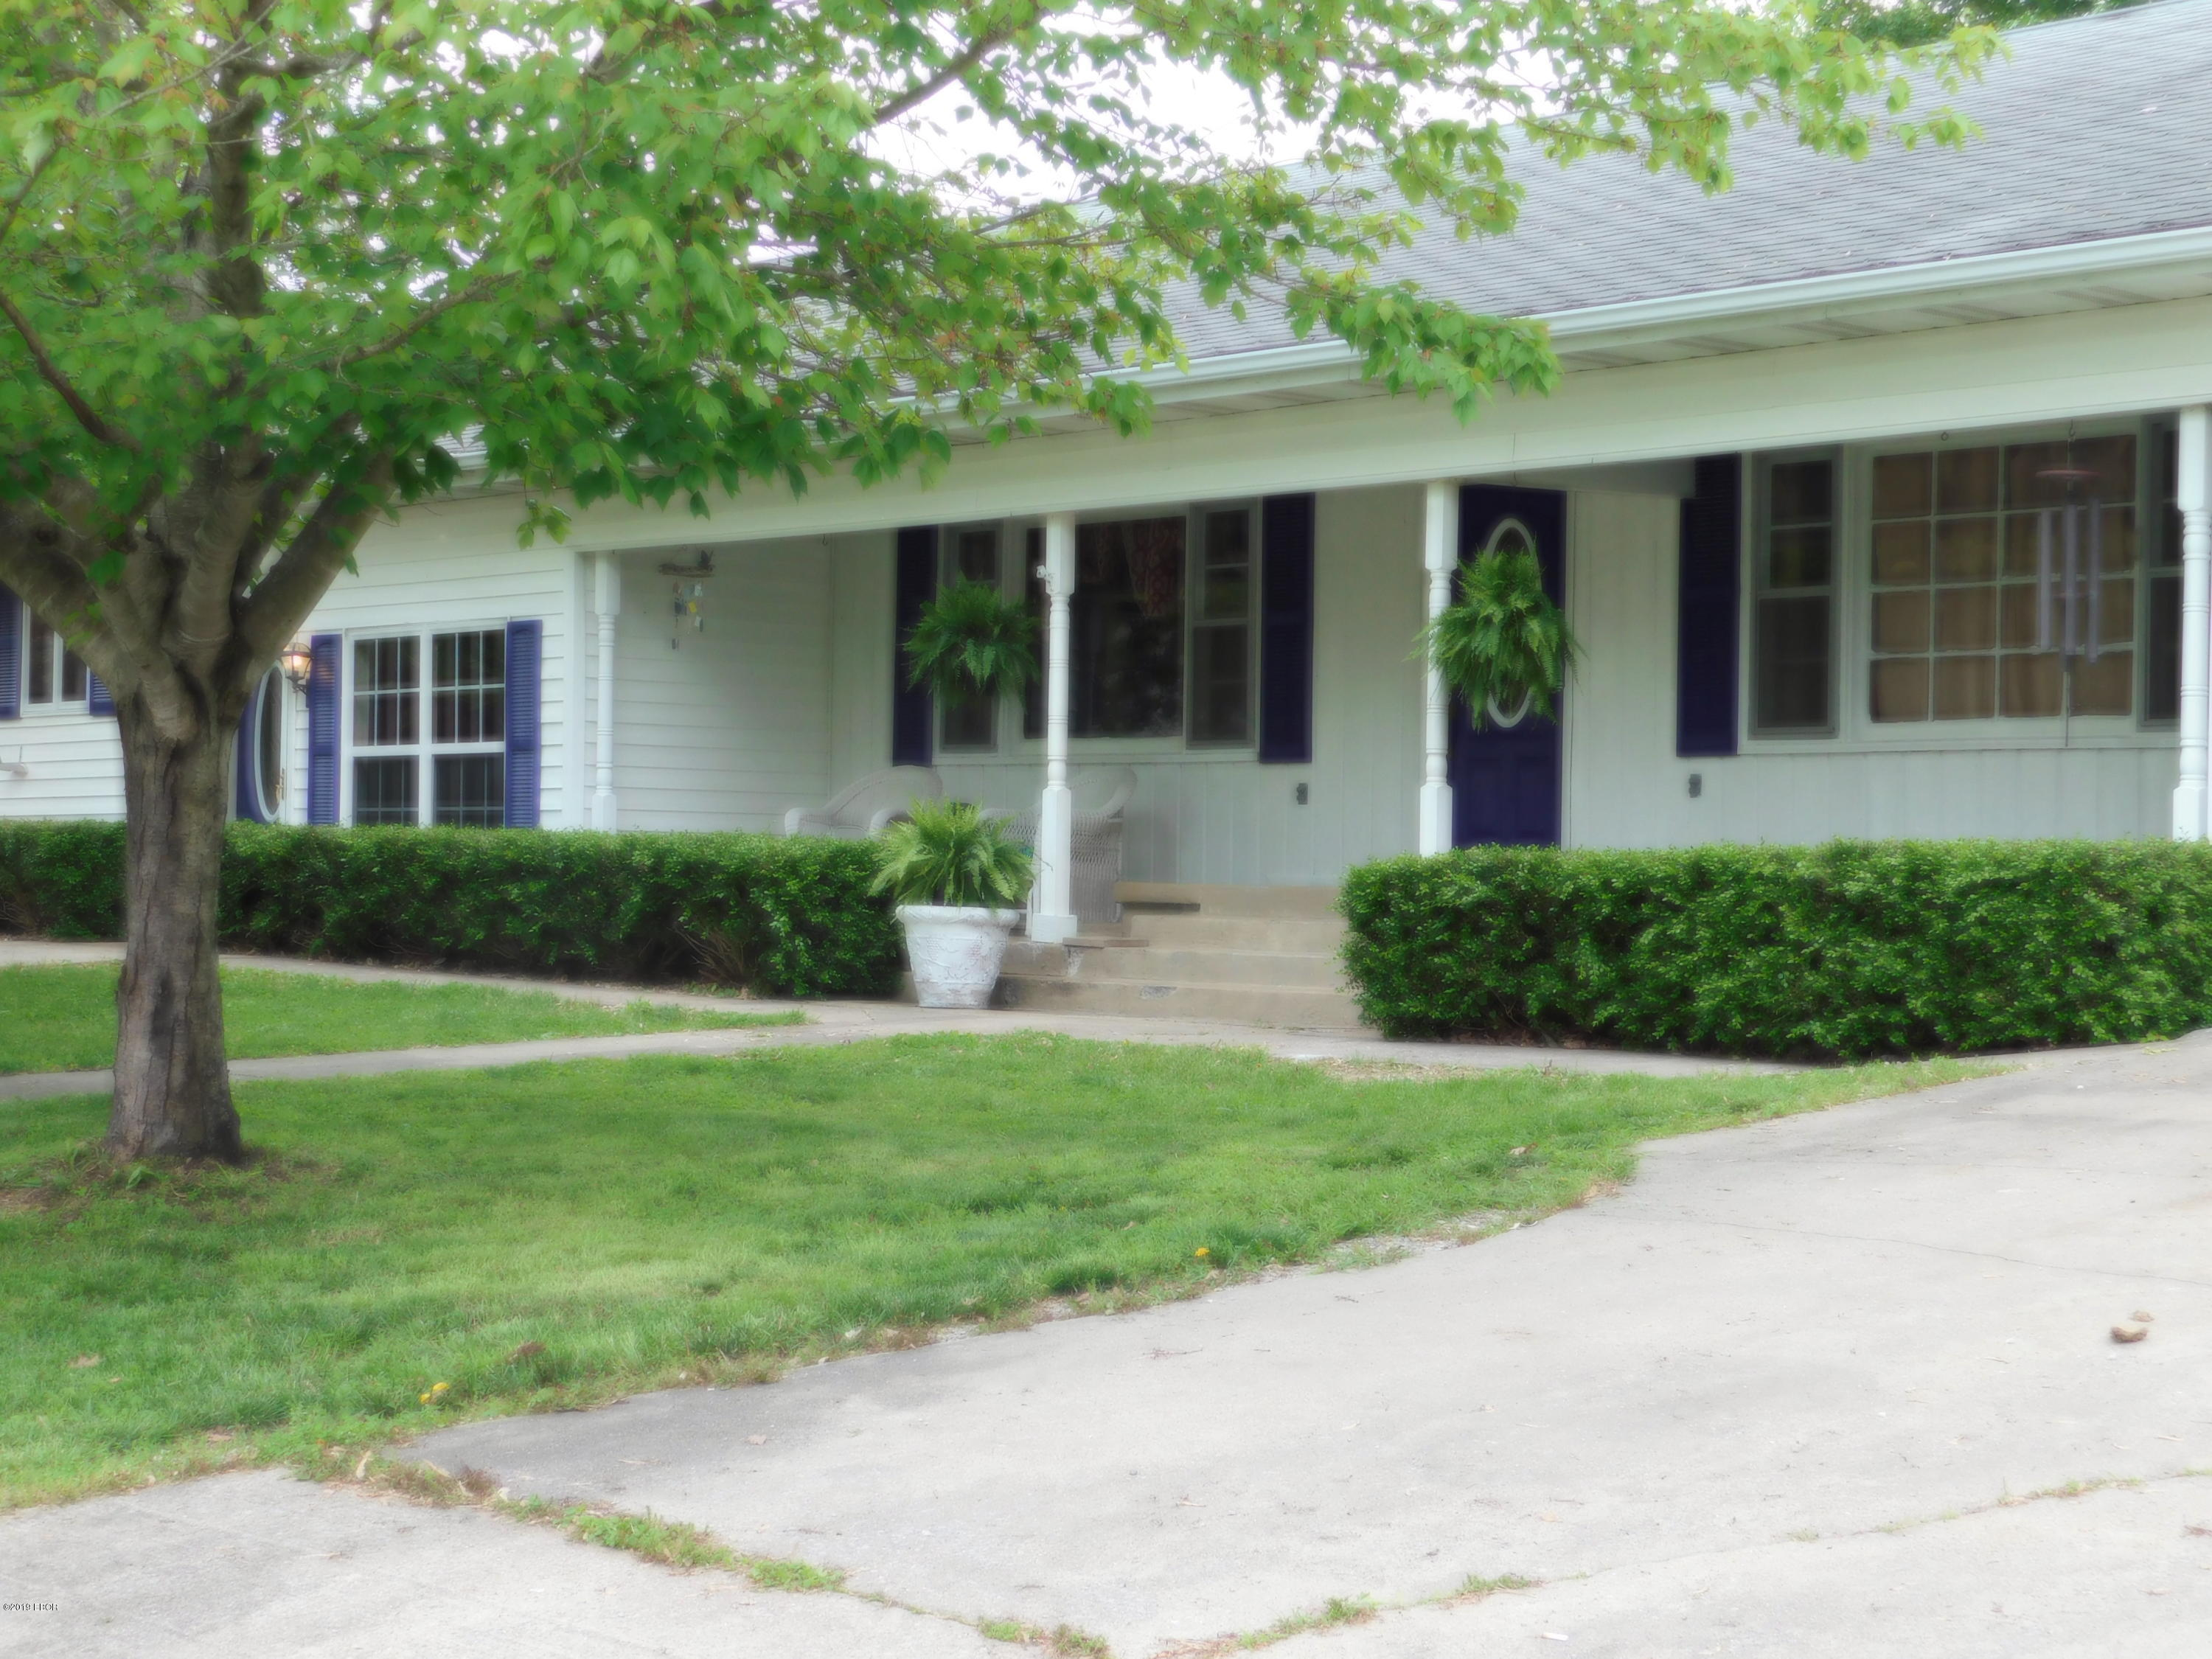 148 Front Street Anna, IL 62906